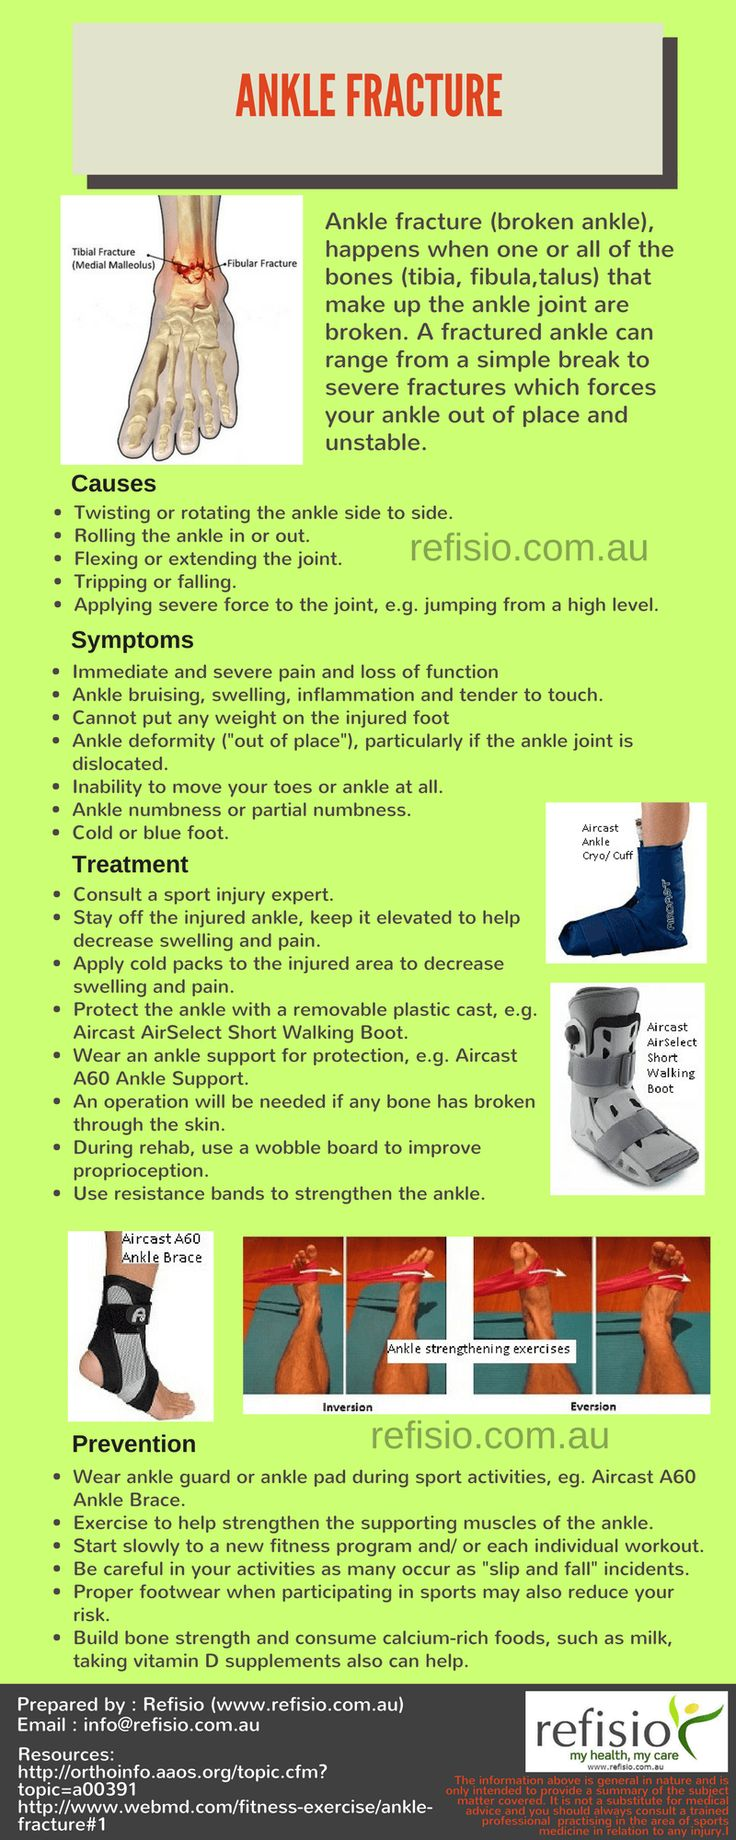 Ankle sprain physical therapy - Ankle Fracture Causes Symptoms Treatment Prevention